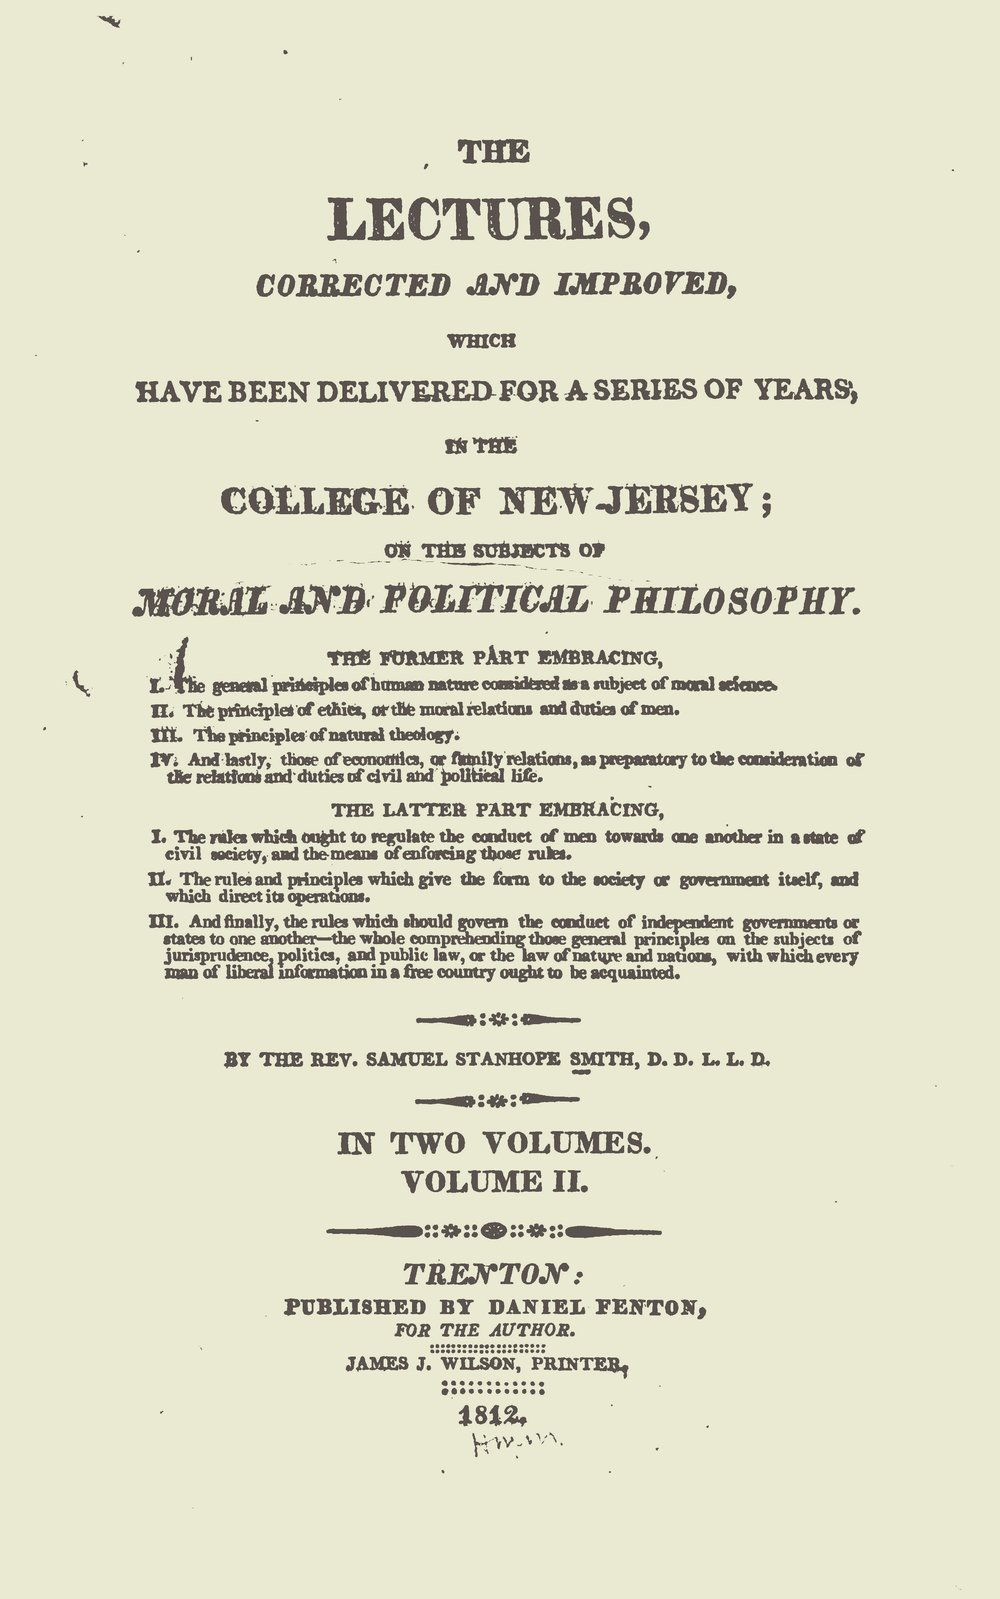 Smith, Samuel Stanhope, Lectures on Moral and Political Philosophy, Vol. 2 Title Page.jpg